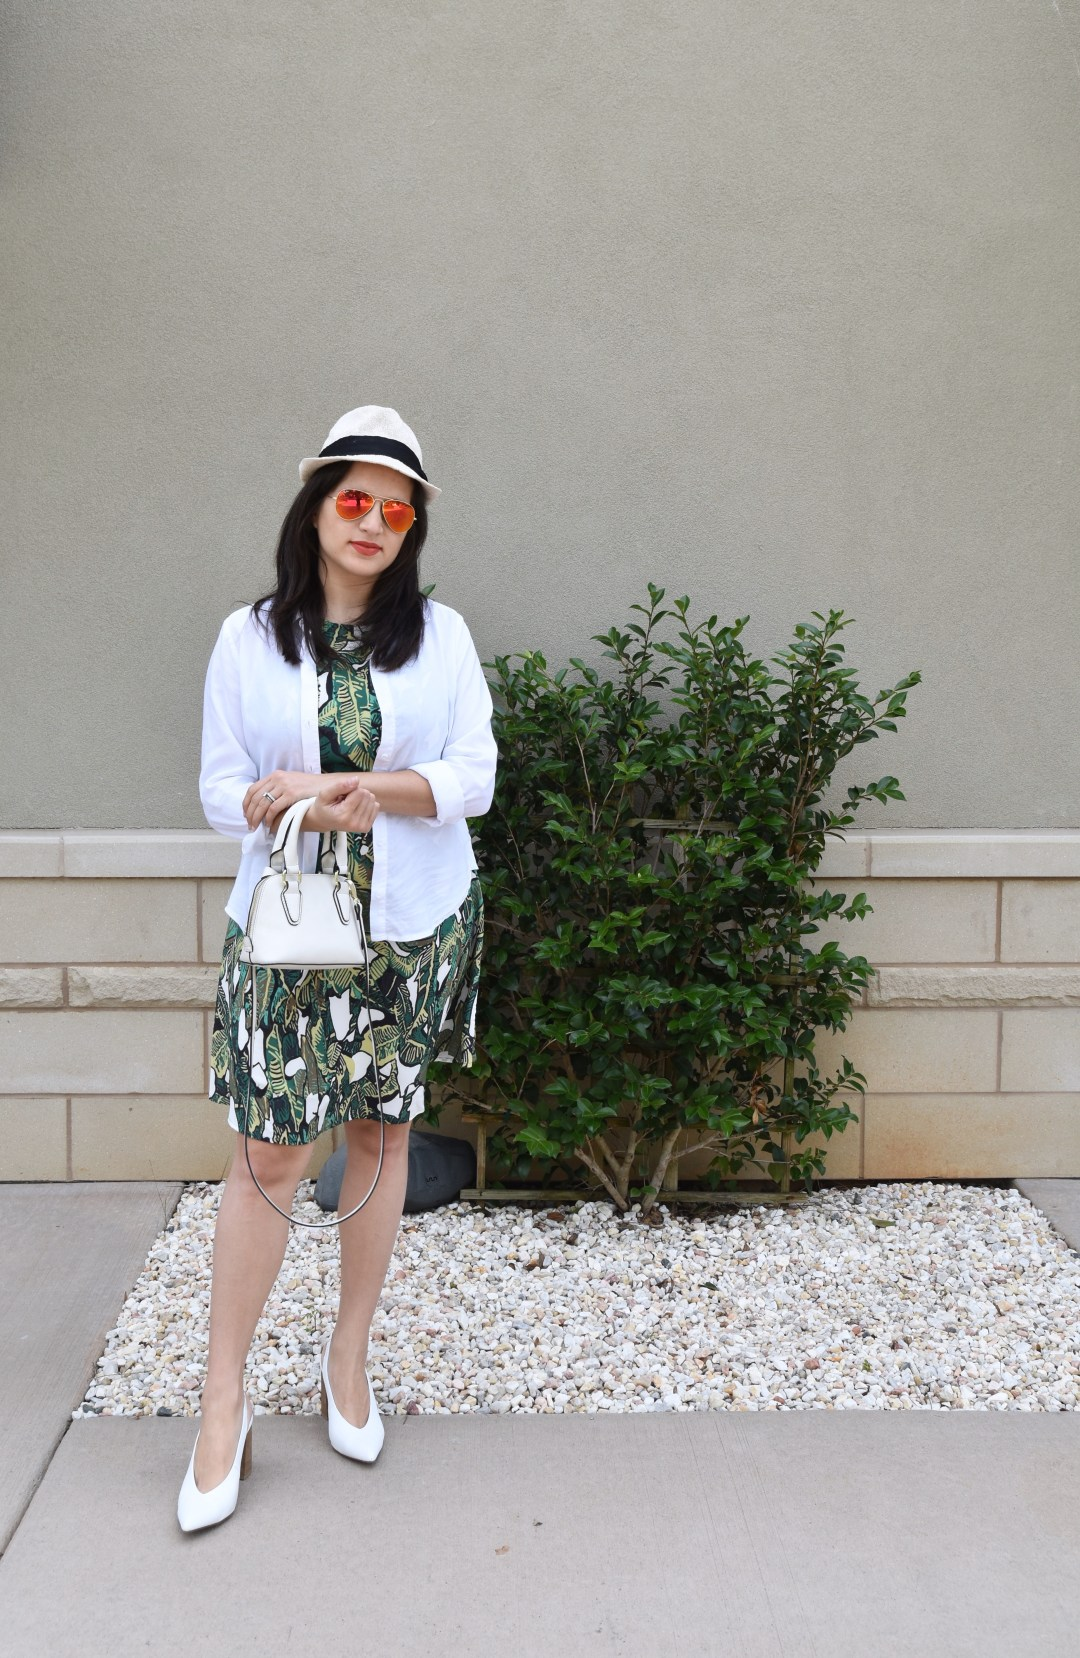 Shein dress, anthropologie jacket, rayban, fedora